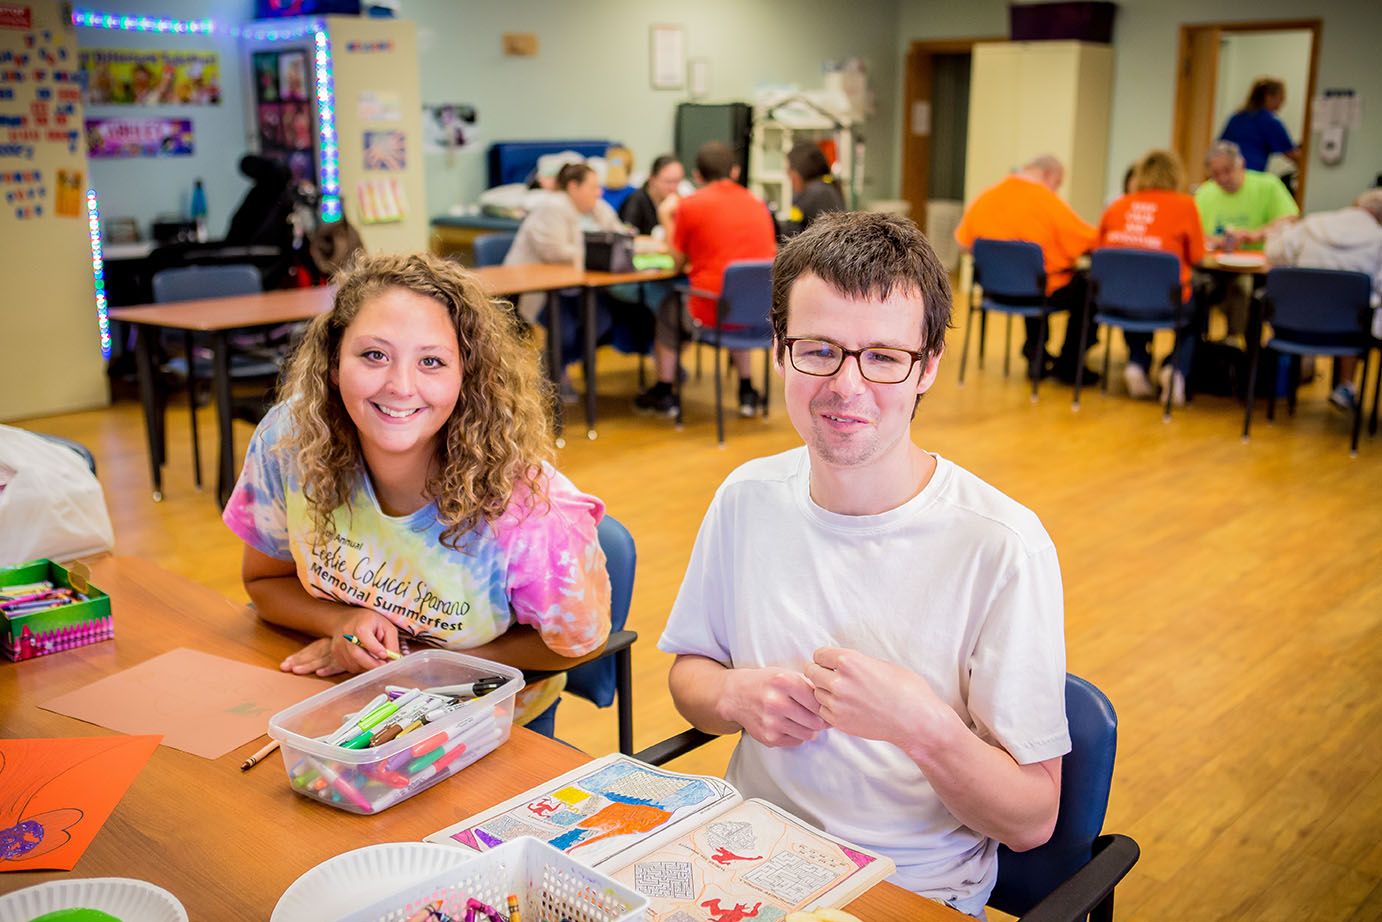 man and woman sitting at table smiling doing crafts